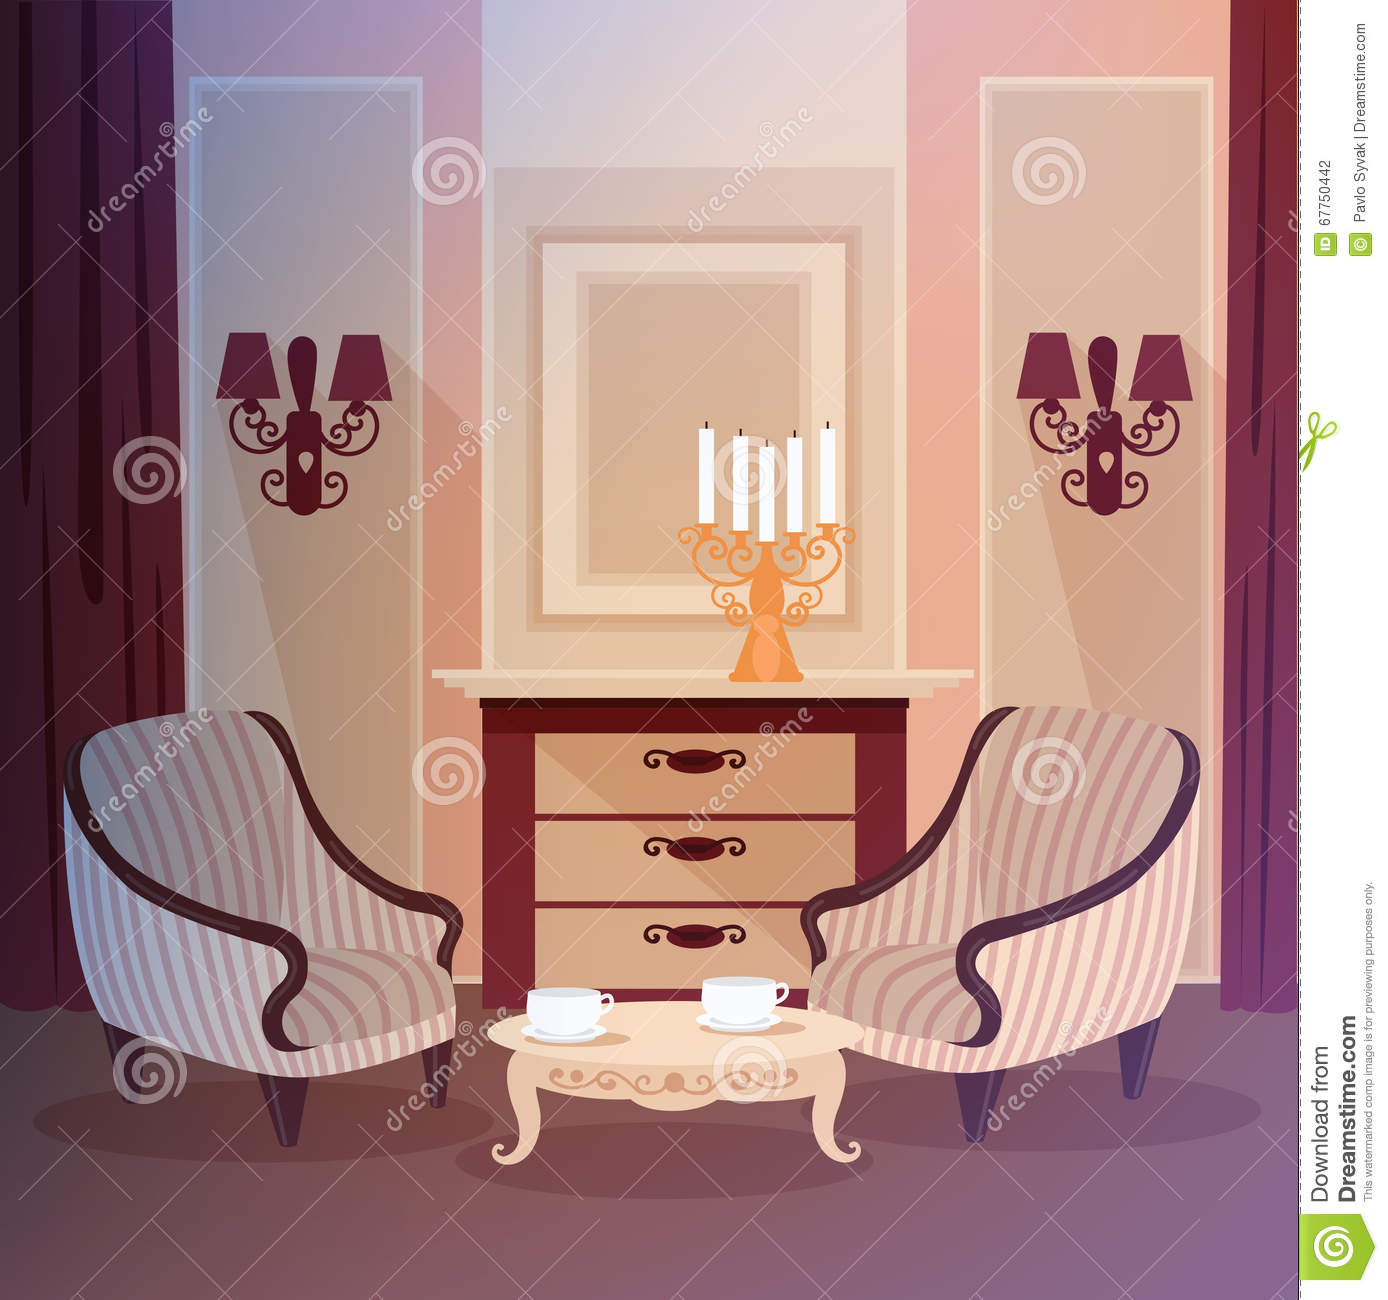 Classic home interior stock image cartoondealercom for Sweet home 3d living room furniture